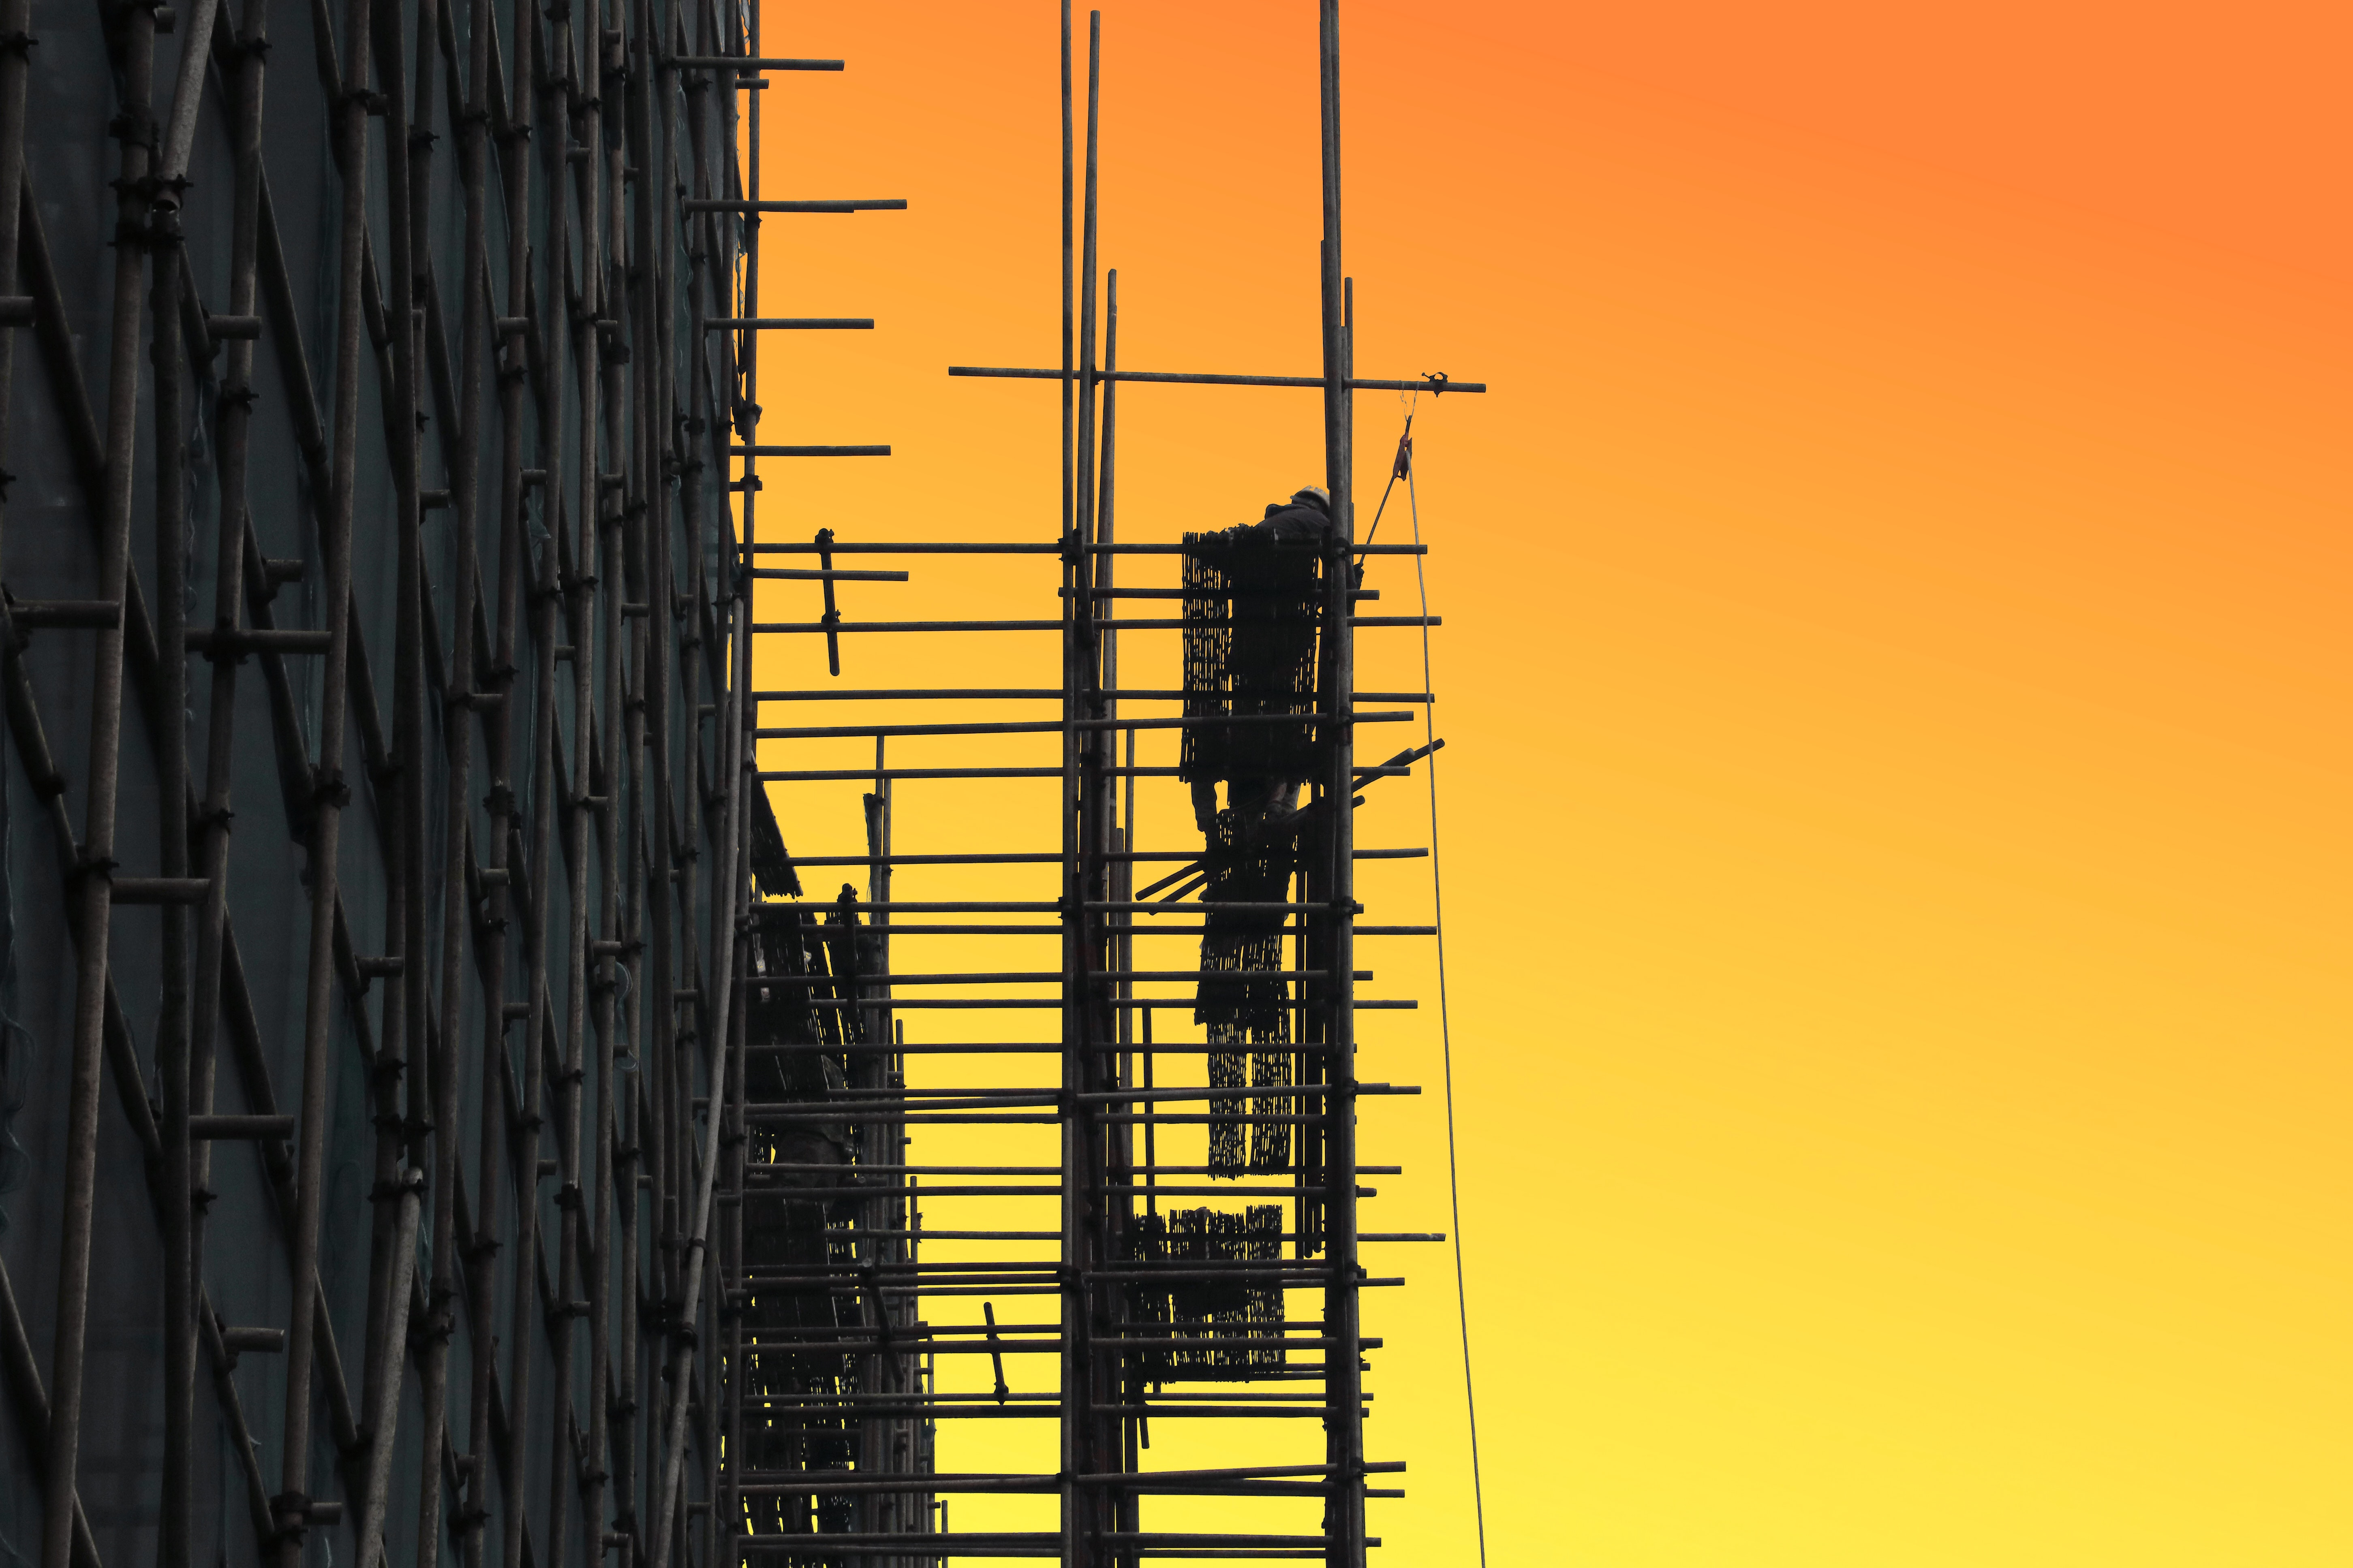 black scaffolding golden hour